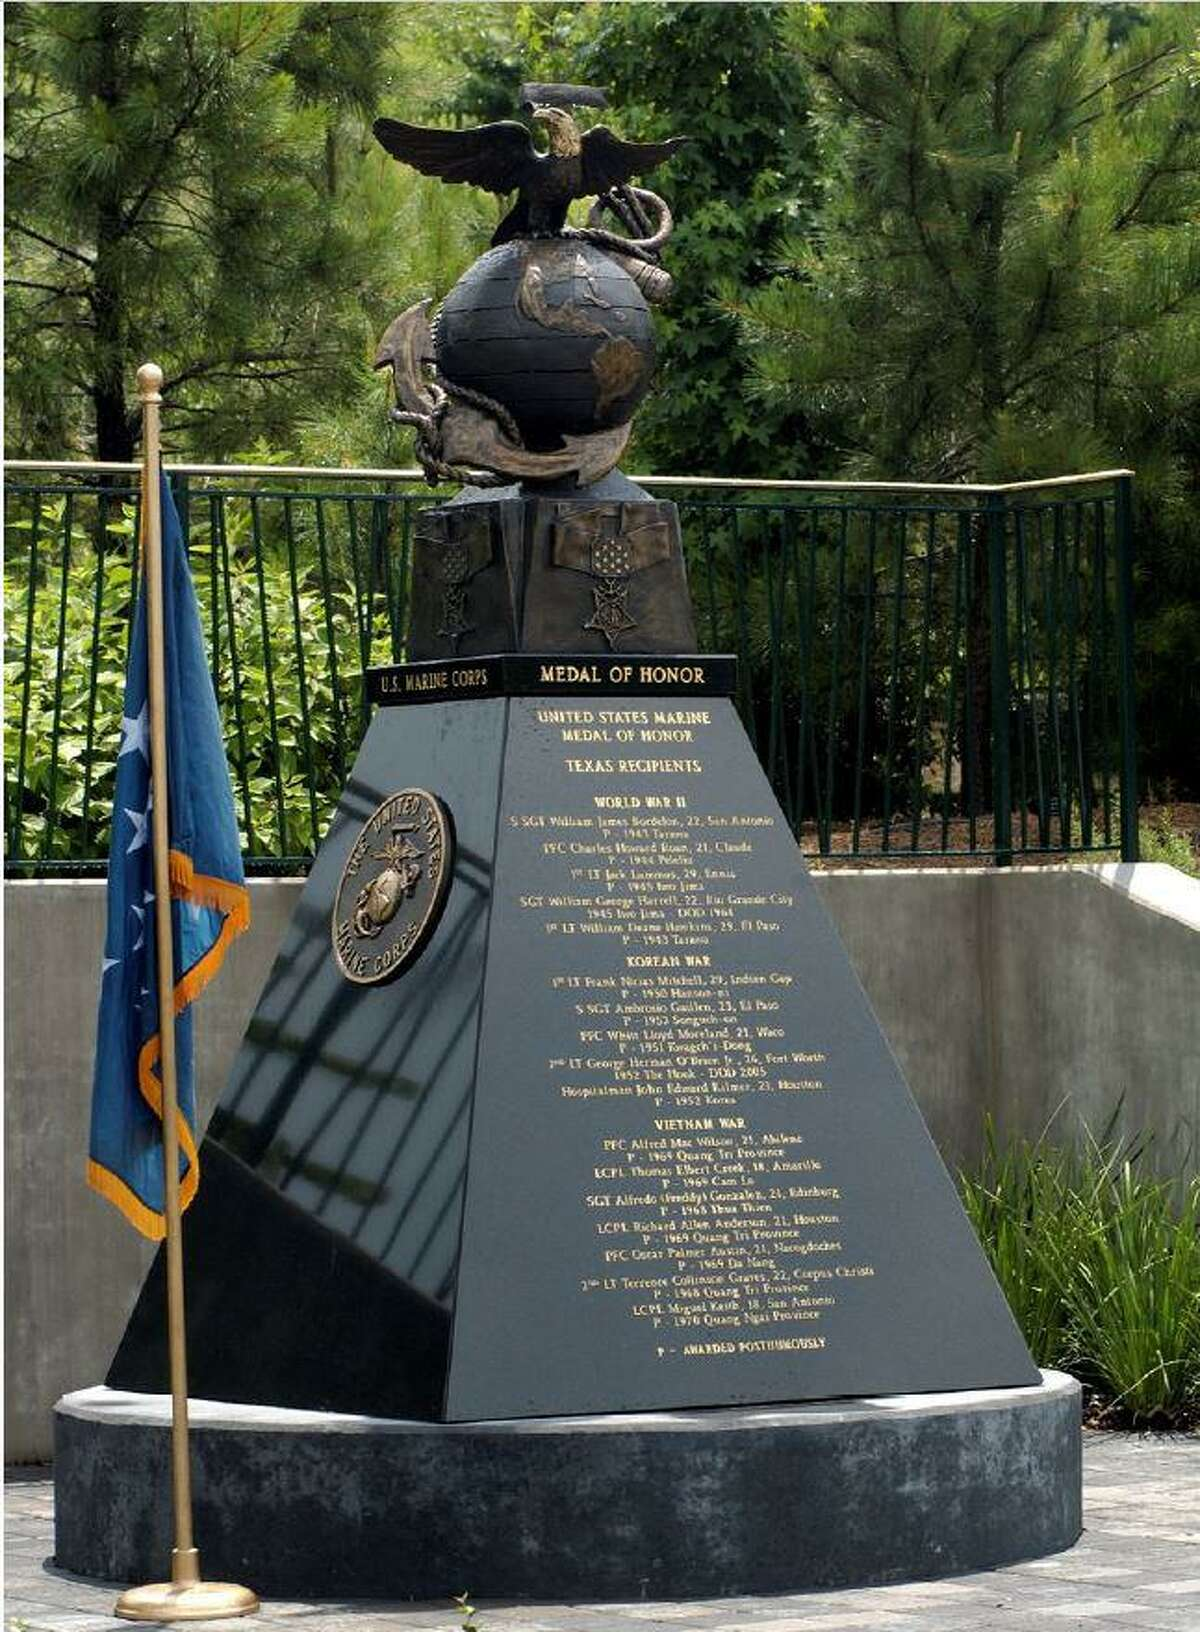 The annual U.S. Marine Corps birthday celebration will occur at 4 p.m. Nov. 6 at Town Green Park. This statue honors 17 recipients of the Medal of Honor and will be the central site of the celebration in Town Green Park. No seating will be available this year due to COVID-19 safety issues.